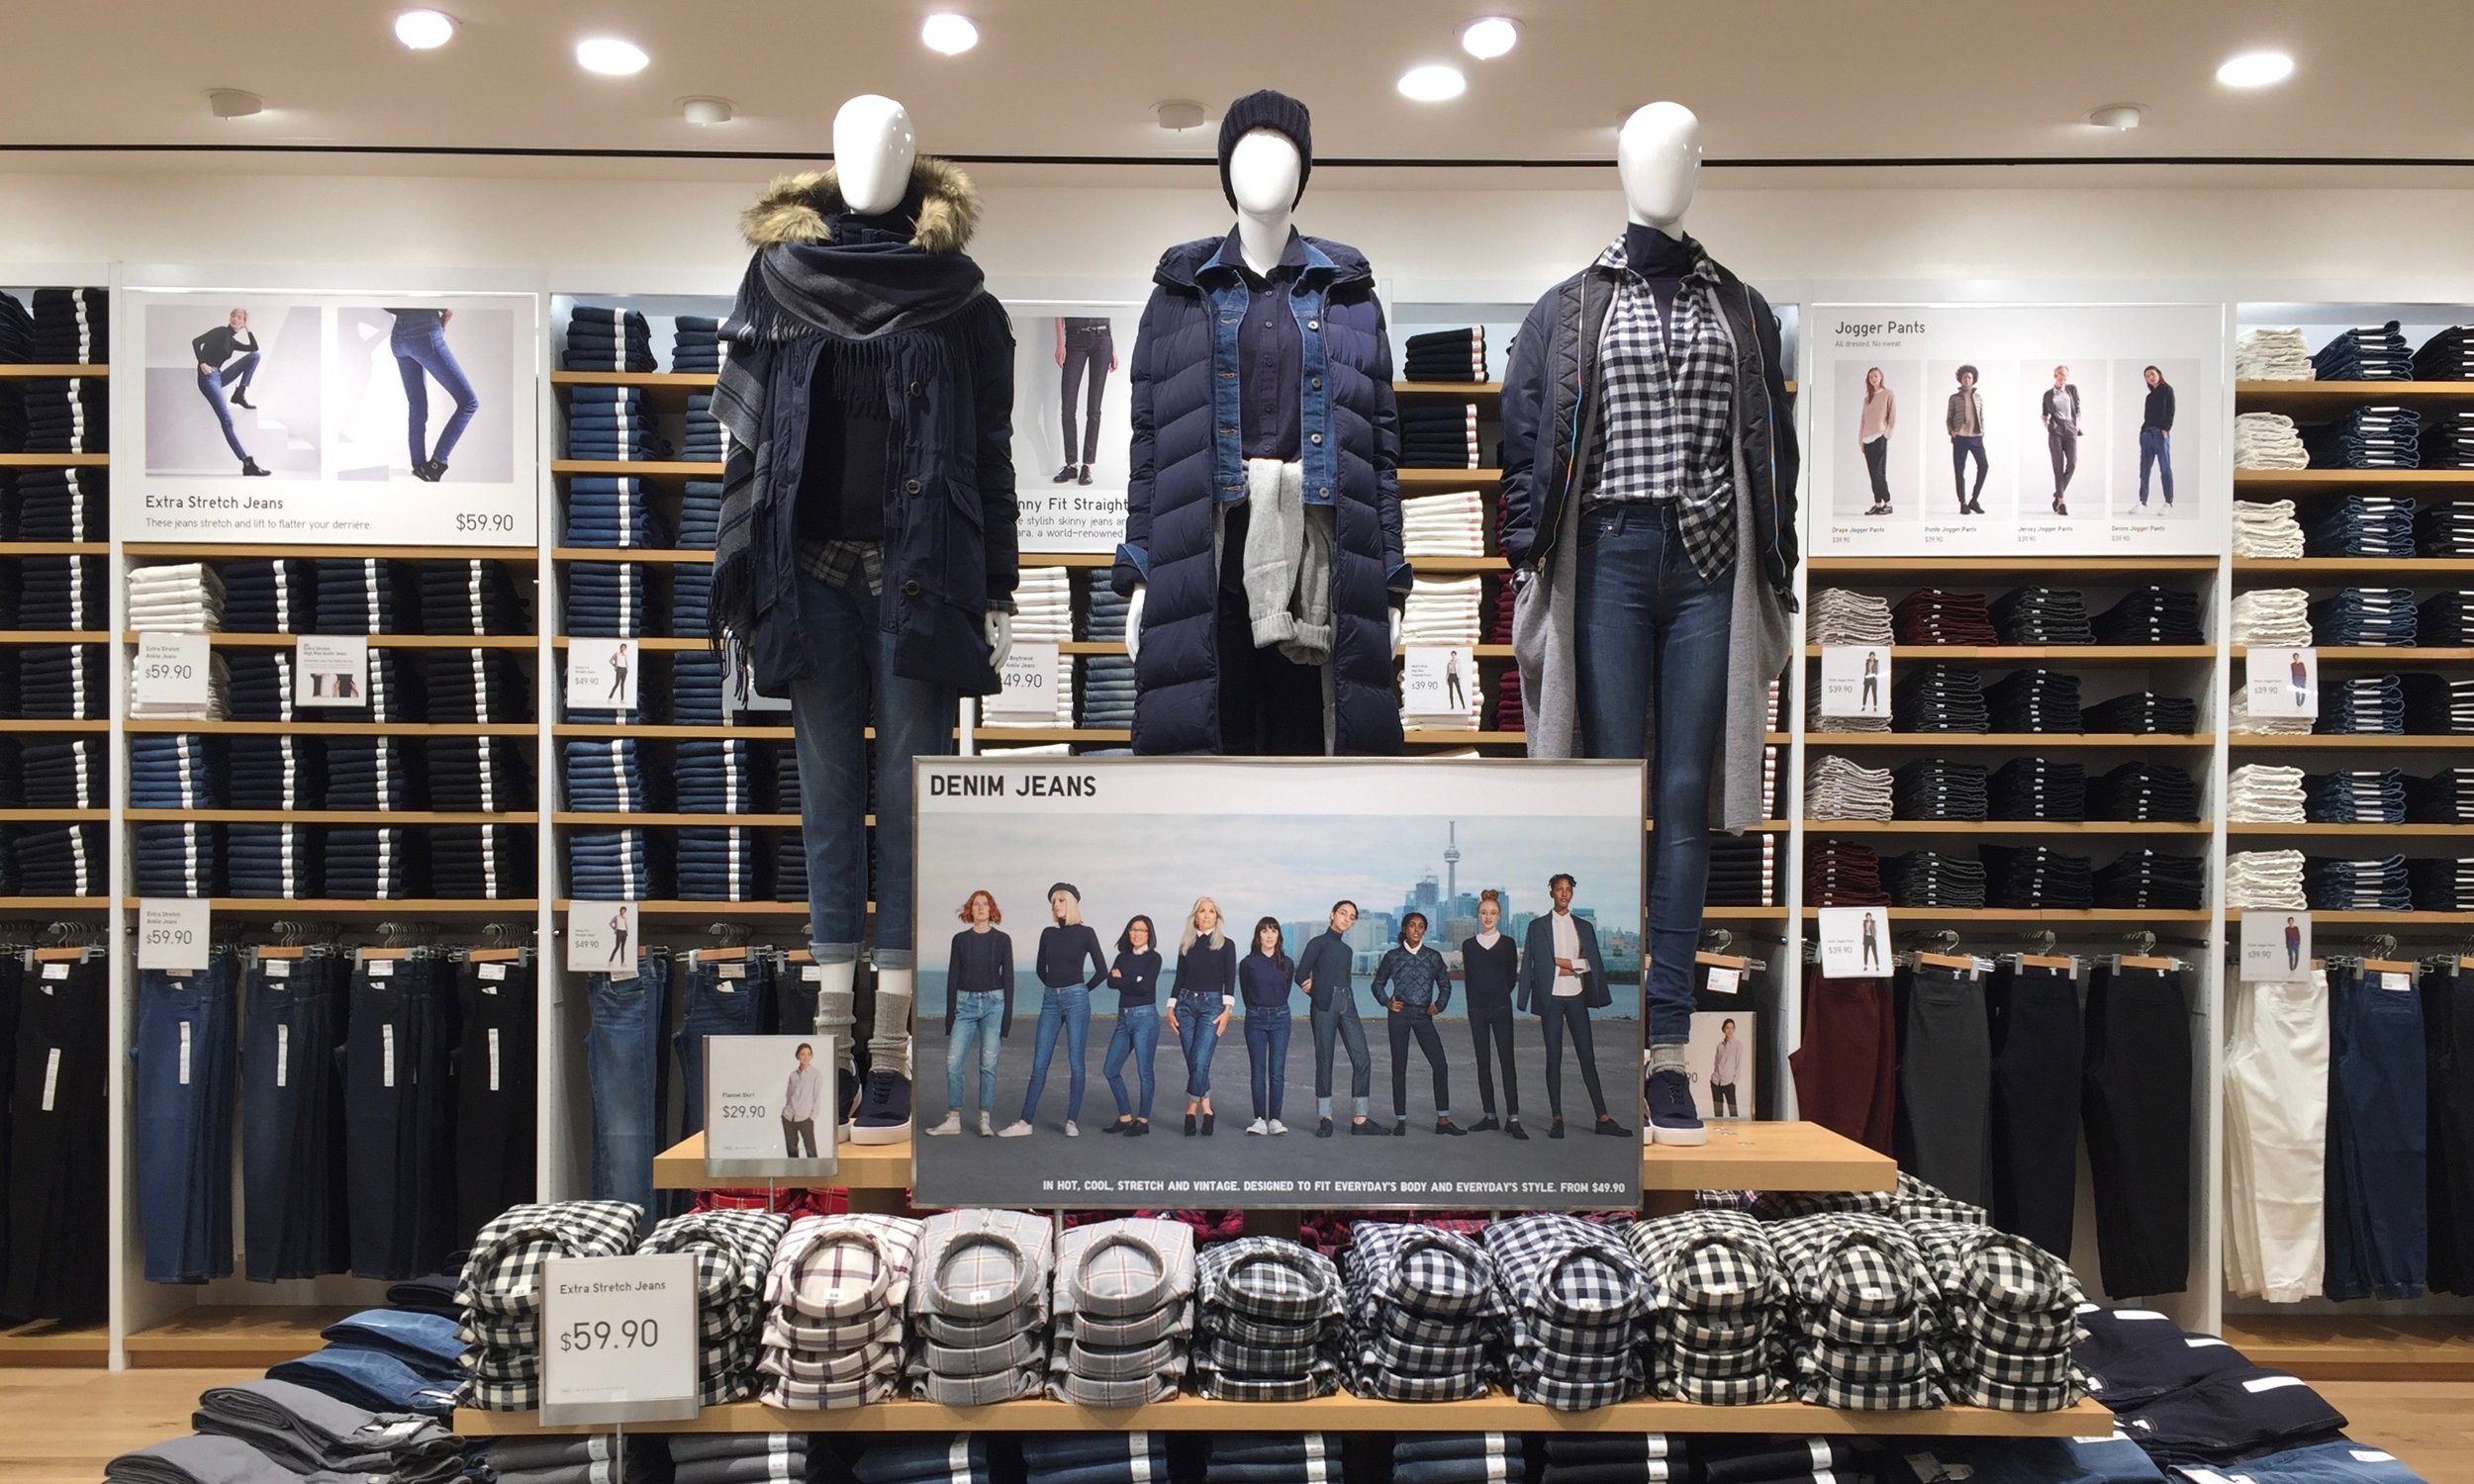 Denim jeans are found on the second floor.